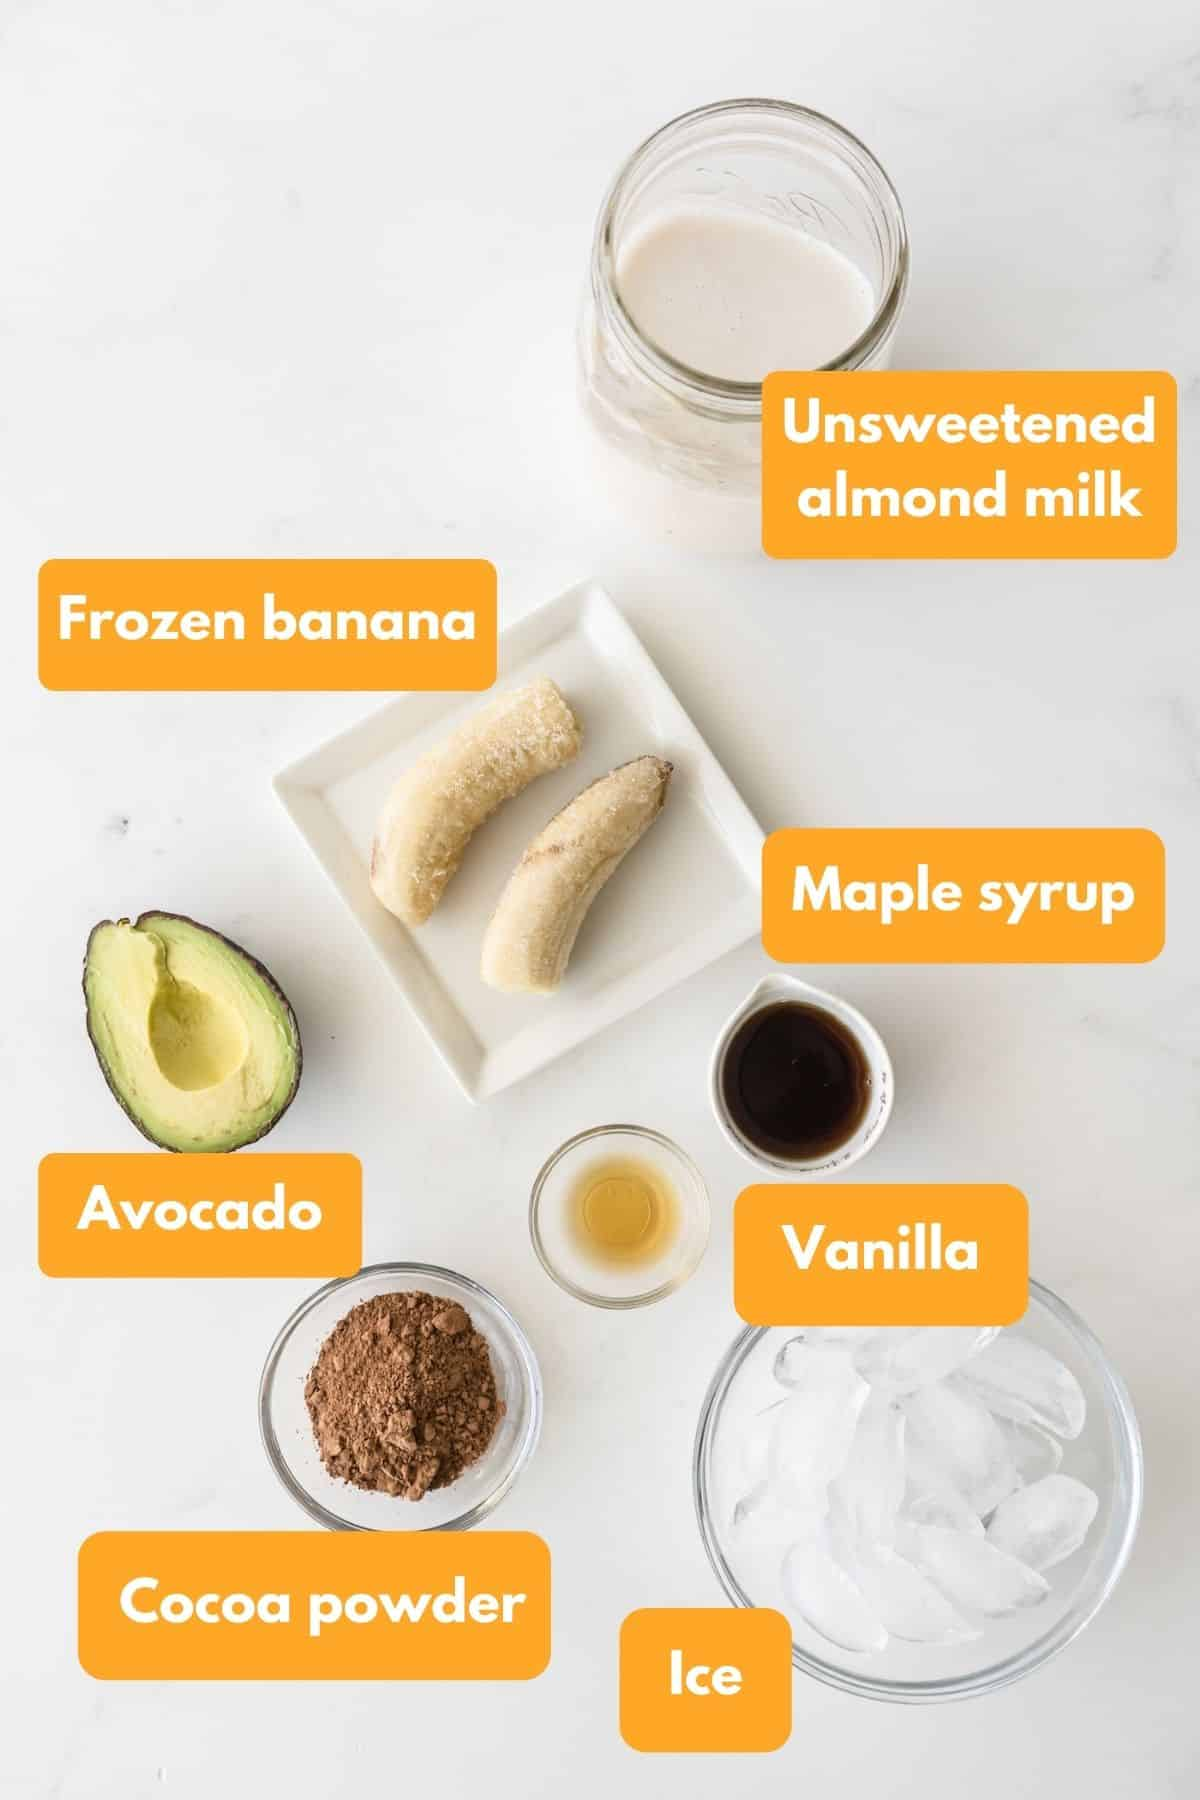 Ingredients for a chocolate avocado smoothie